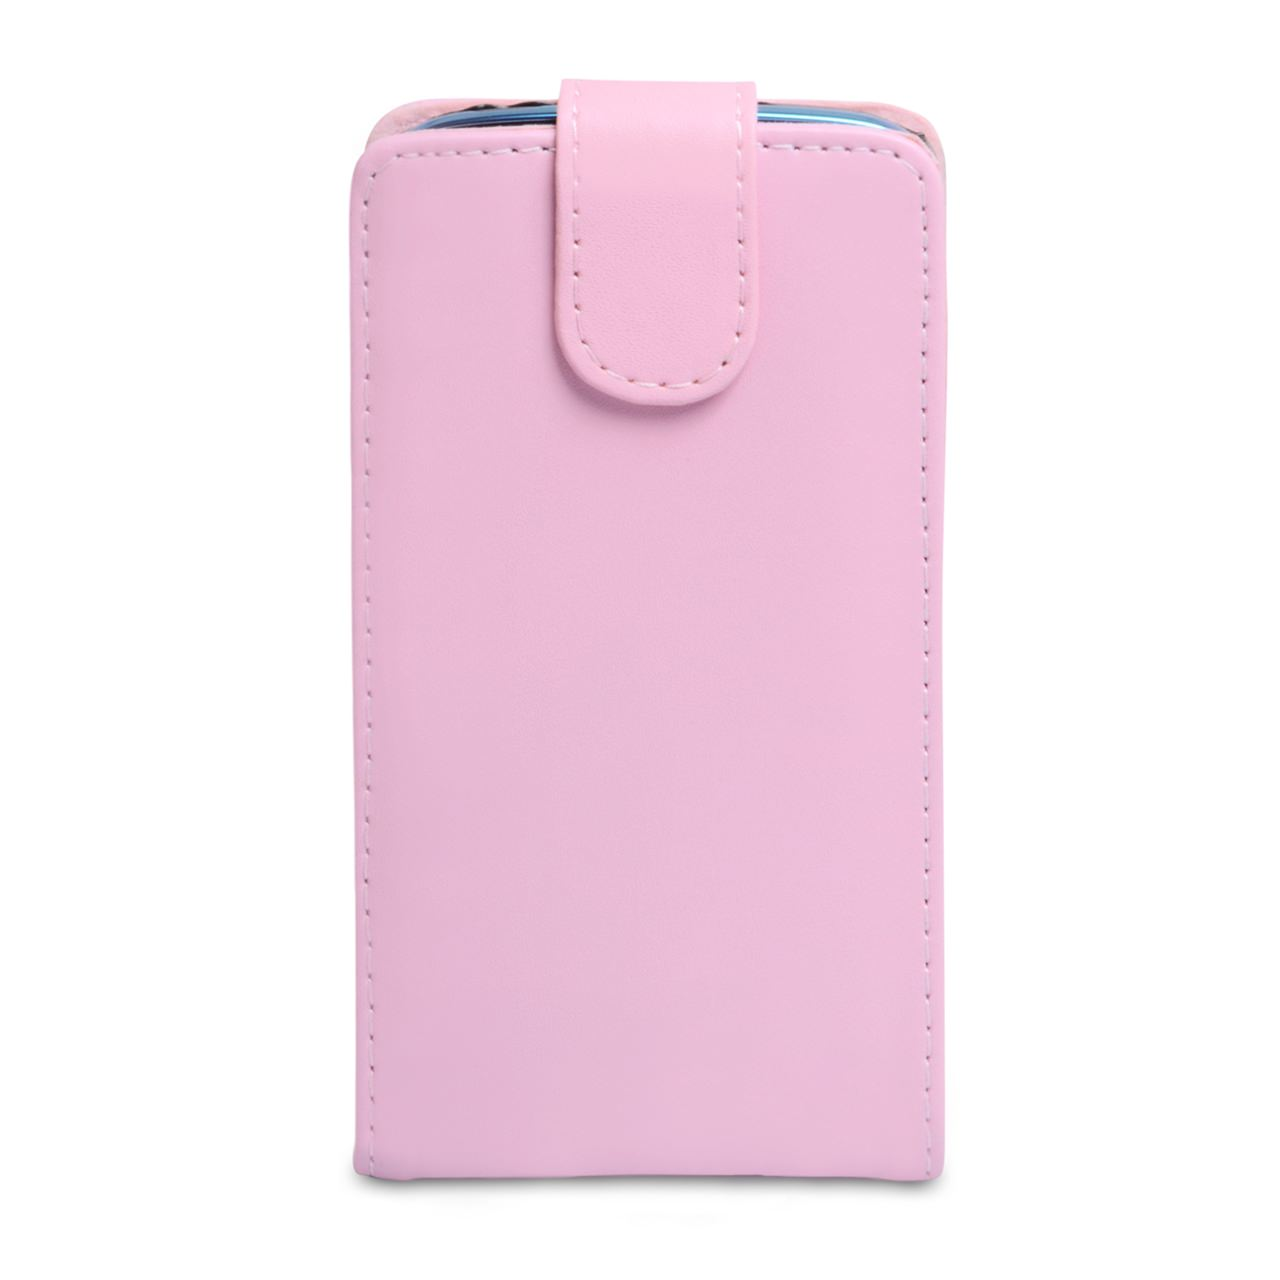 YouSave Samsung Galaxy S4 Active Leather Effect Flip Case - Baby Pink